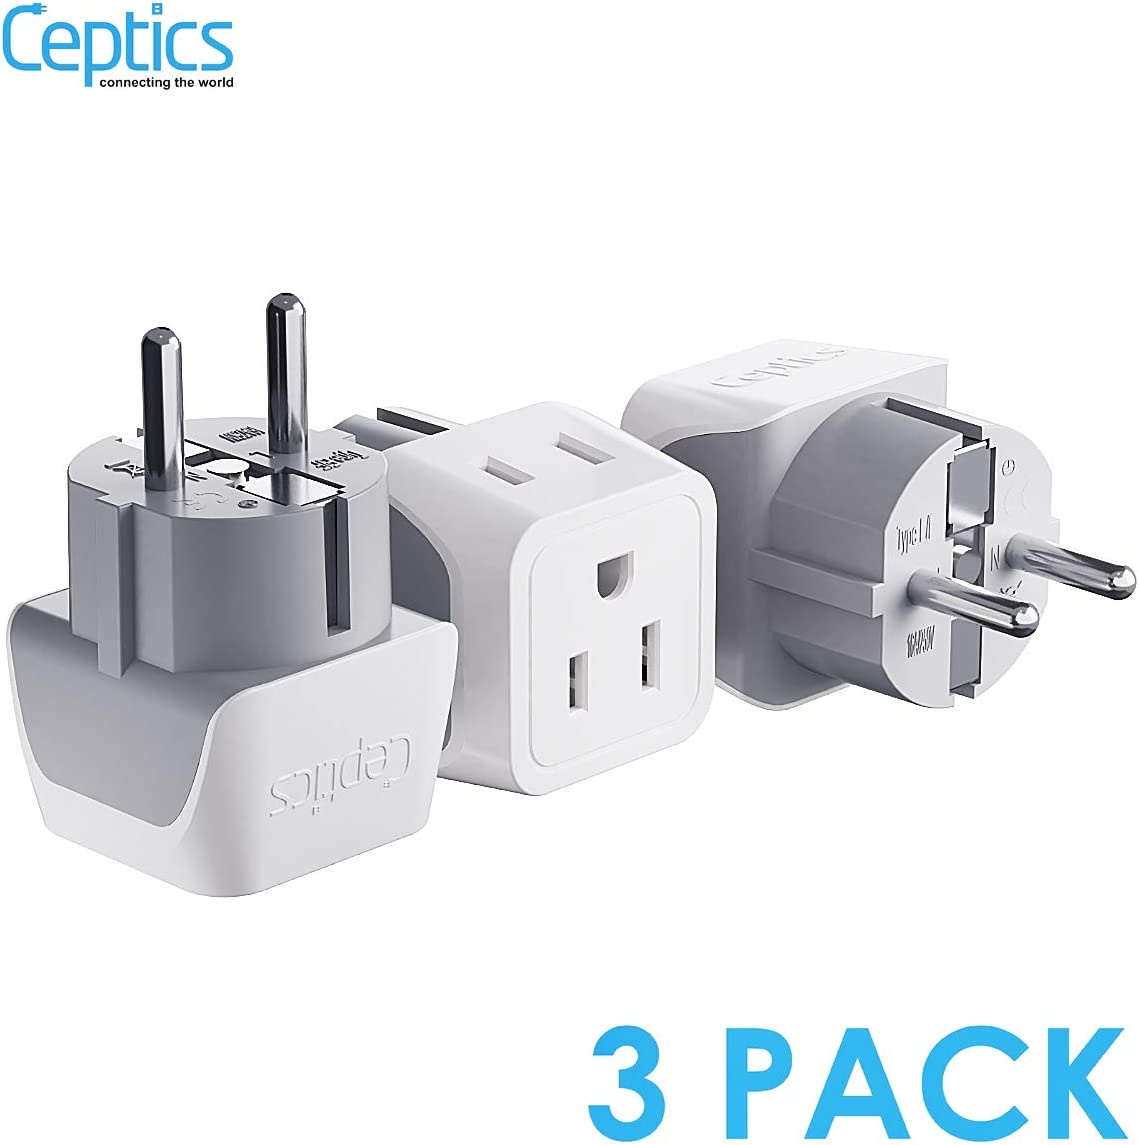 Schuko Germany, France Plug Adapter by Ceptics, Dual Input - Ultra Compact Light Weight - Usa to Russia, South Korea Travel Adaptor Plug - Type E/F (3 Pack)